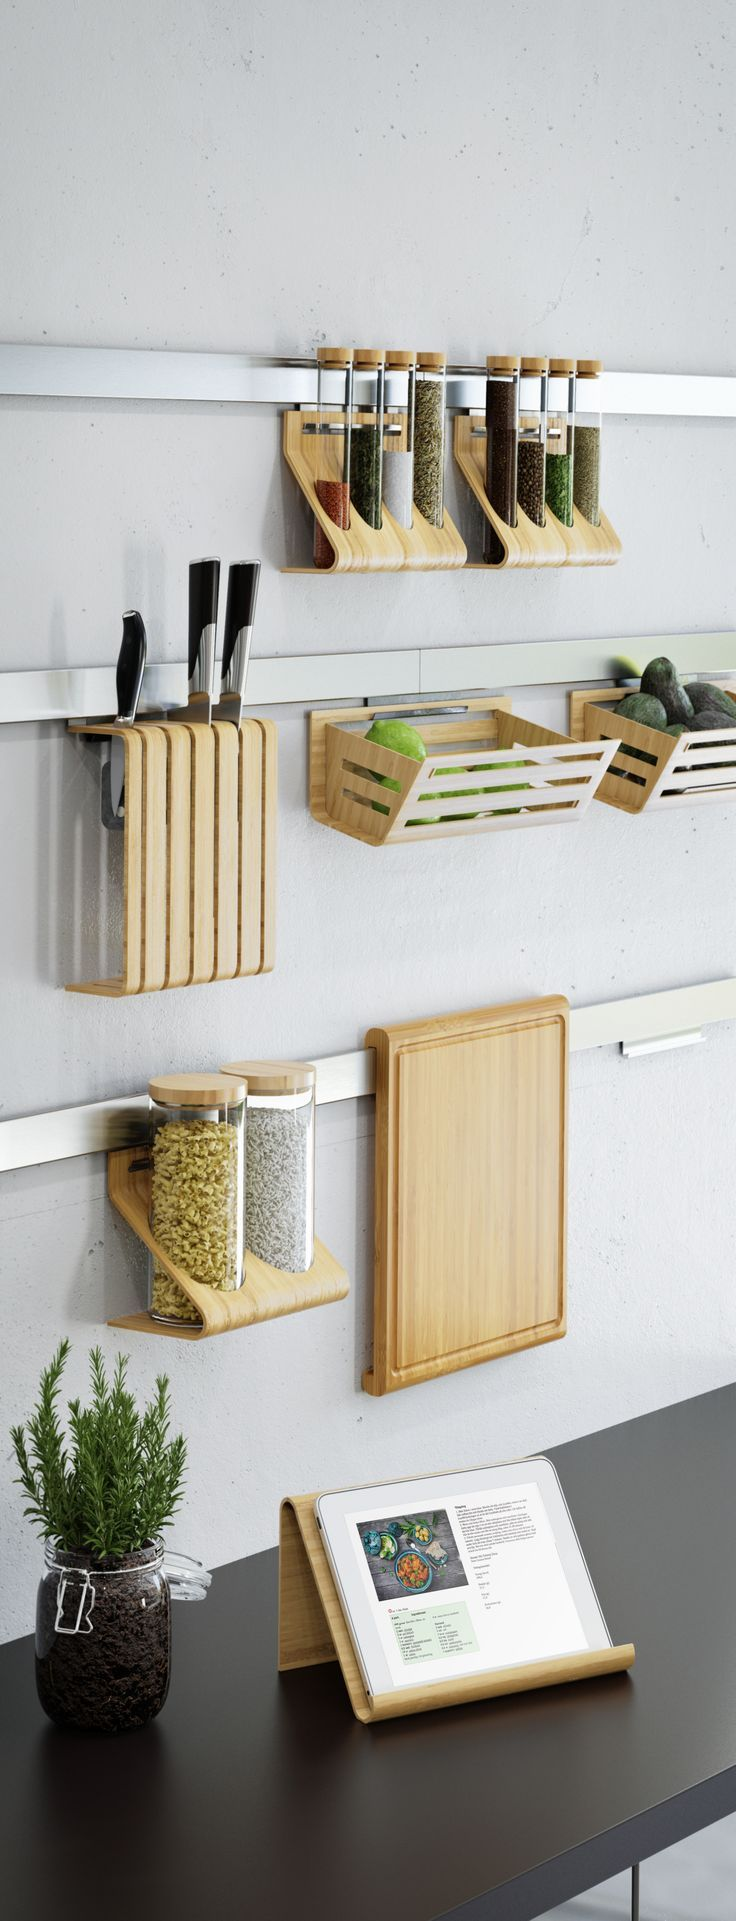 IKEA Fan Favorite: RIMFORSA series. Made from steel, glass and durable, easy-care, natural bamboo, our RIMFORSA series is a stylish way to organize kitchen essentials and keep them close at hand.